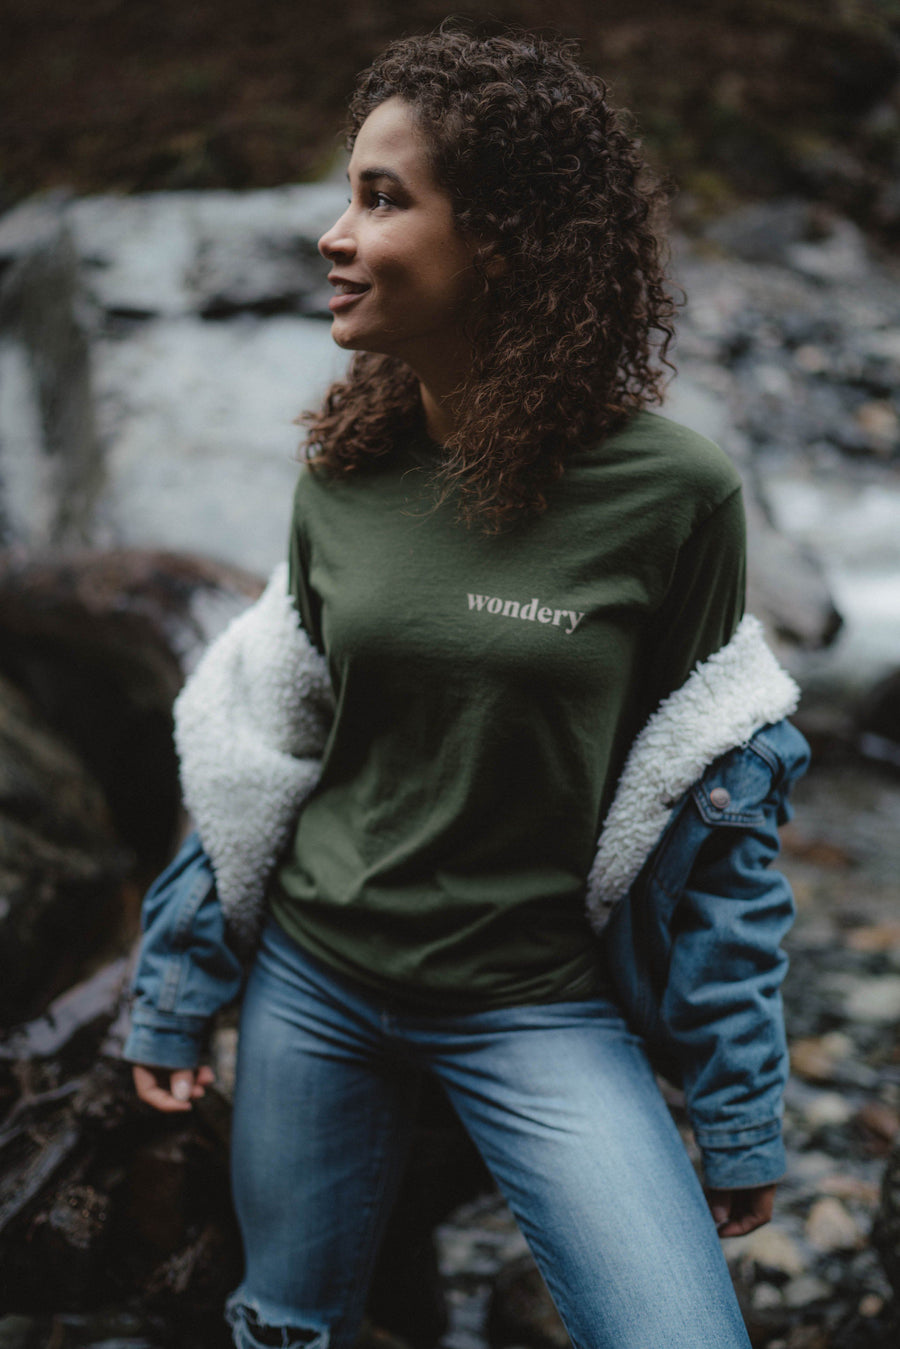 Wondery Long Sleeve - Wondery, A Parks Apparel Brand